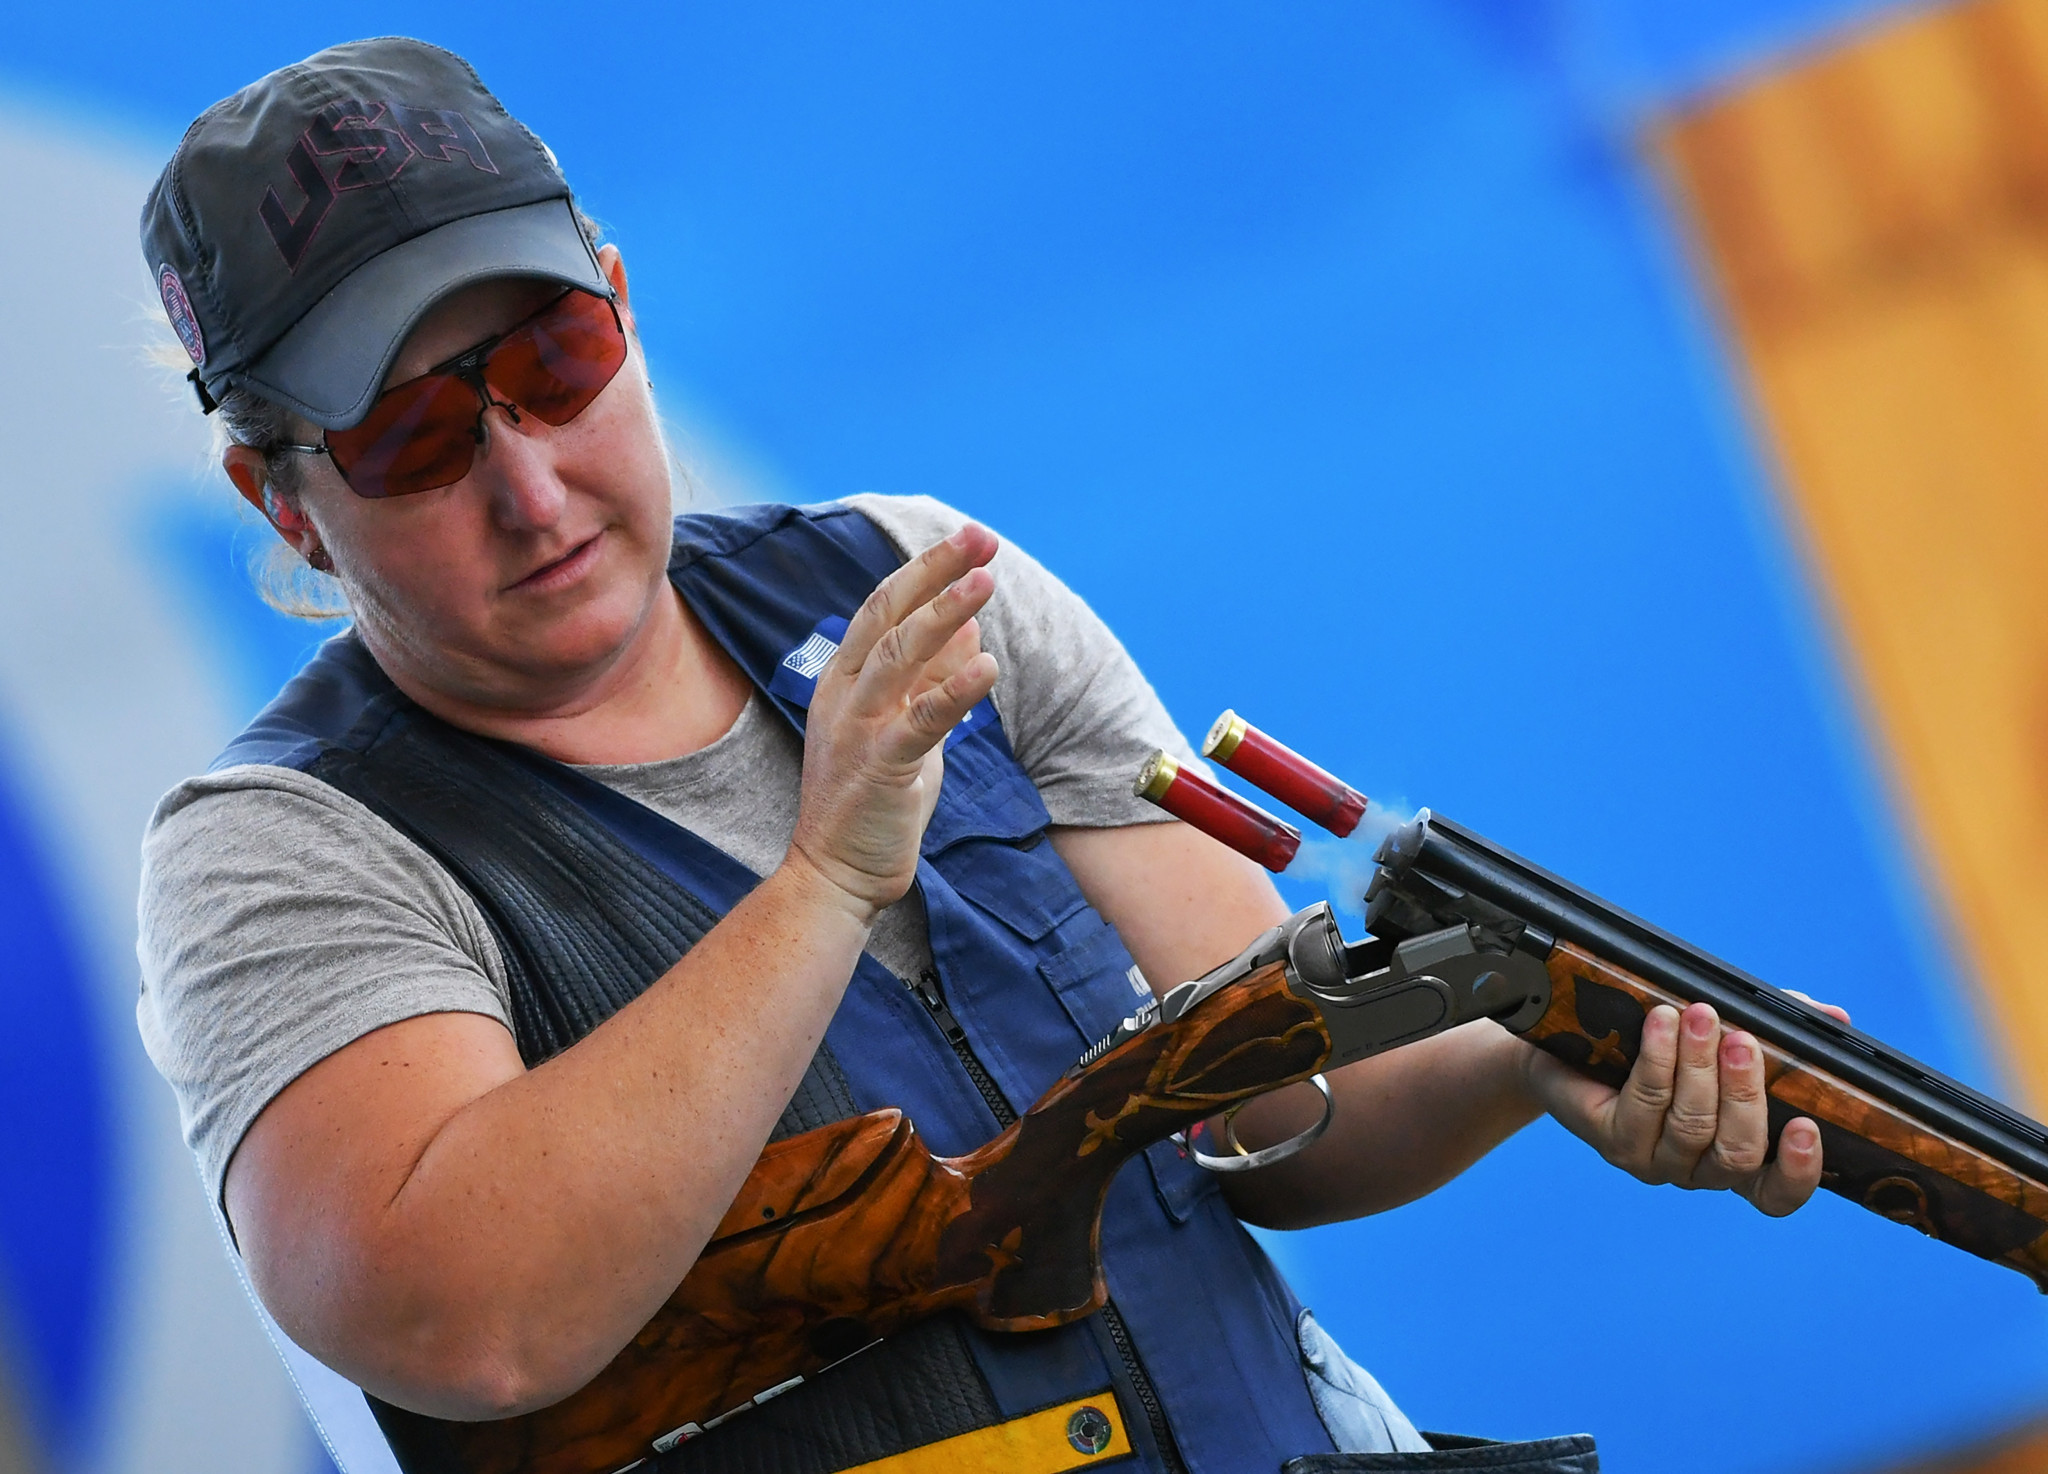 Kimberley Rhode won her third consecutive ISSF Shotgun World Cup women's skeet title in Changwon ©Getty Images